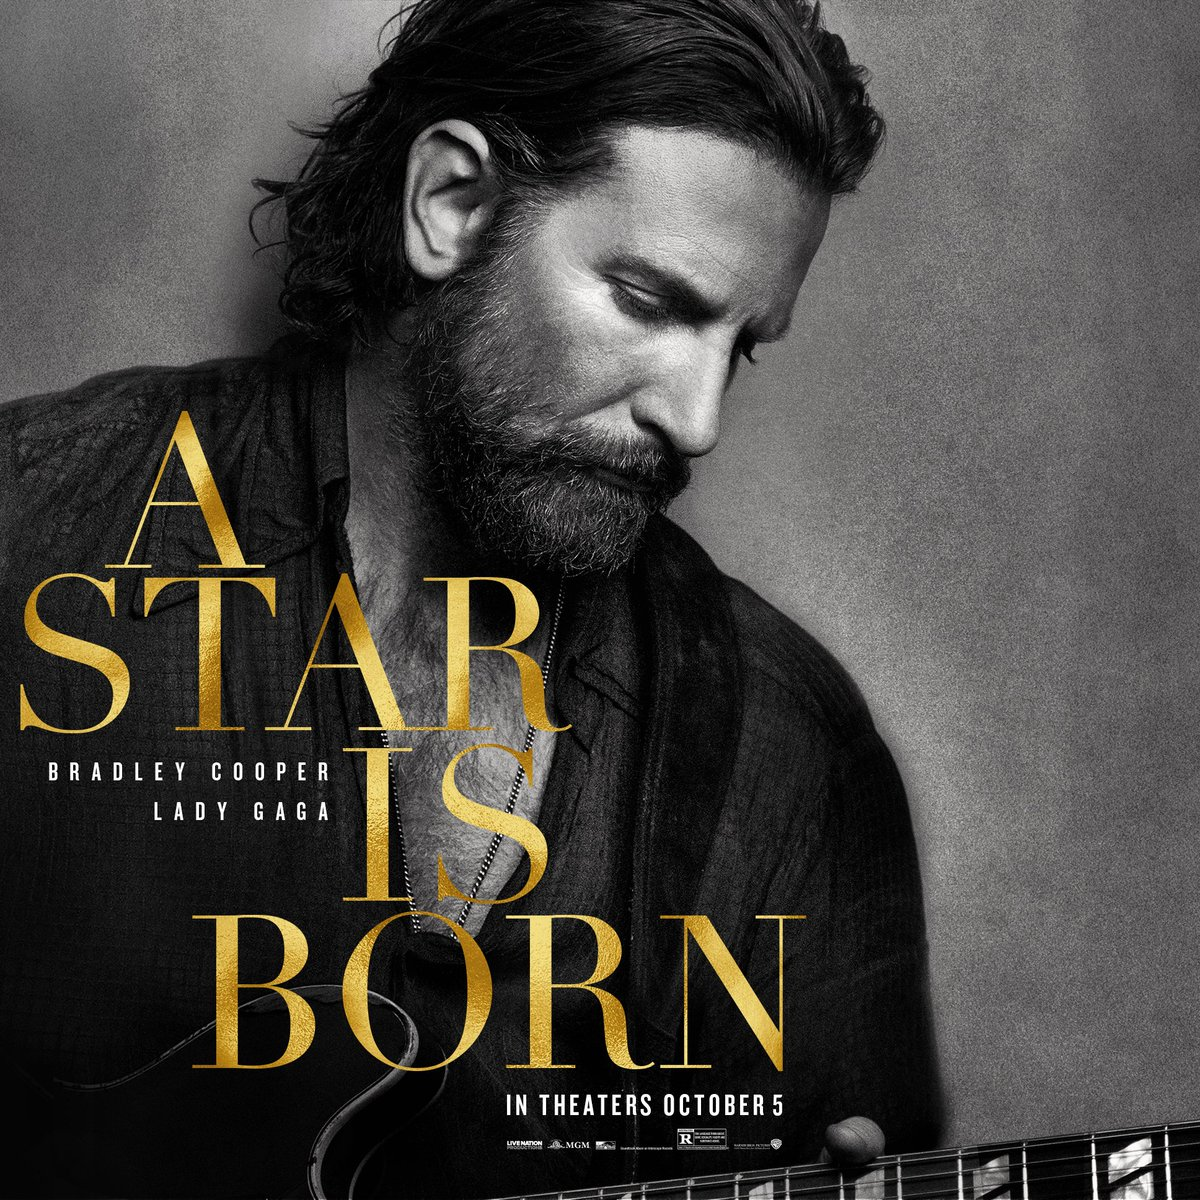 Lady Gaga, Bradley Cooper sing together in A Star is Born